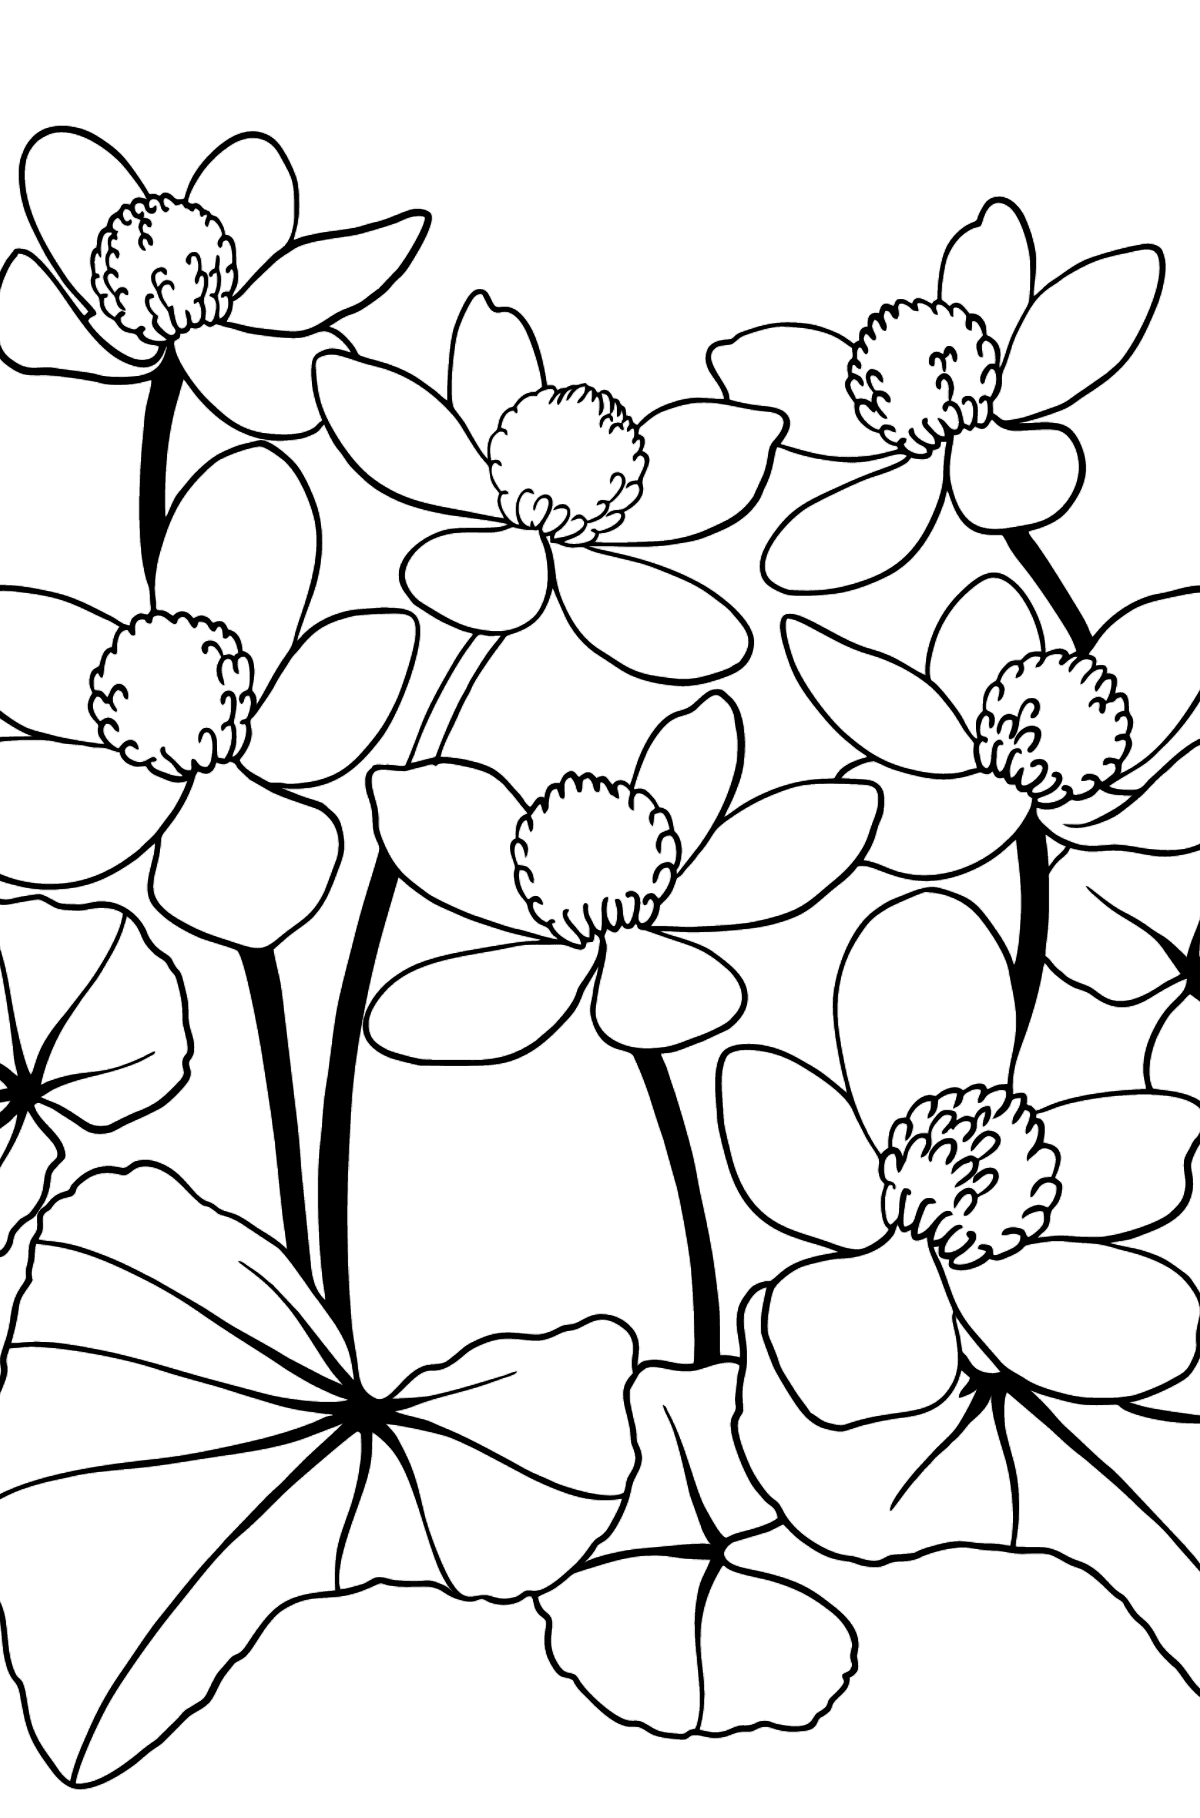 Flower Coloring Page - A Yellow and Red Marsh Marigold - Coloring Pages for Kids